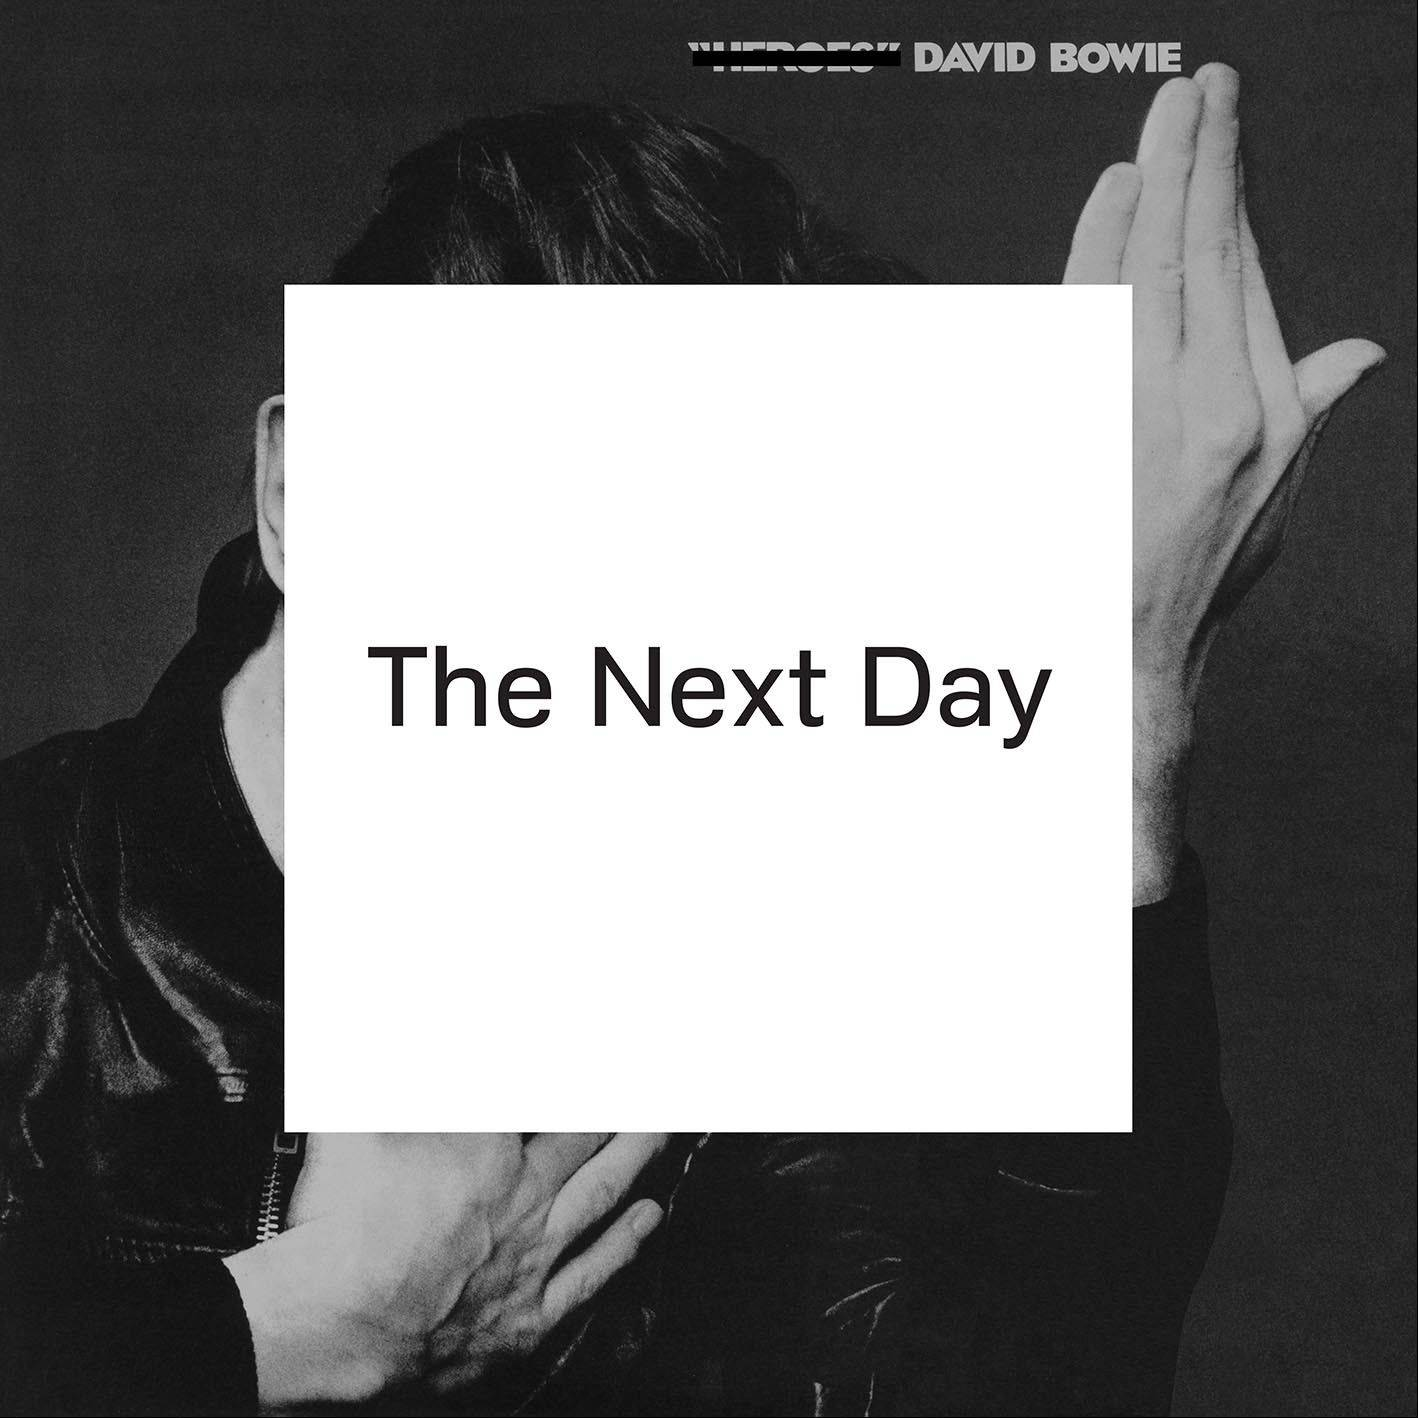 """The Next Day"" by David Bowie"